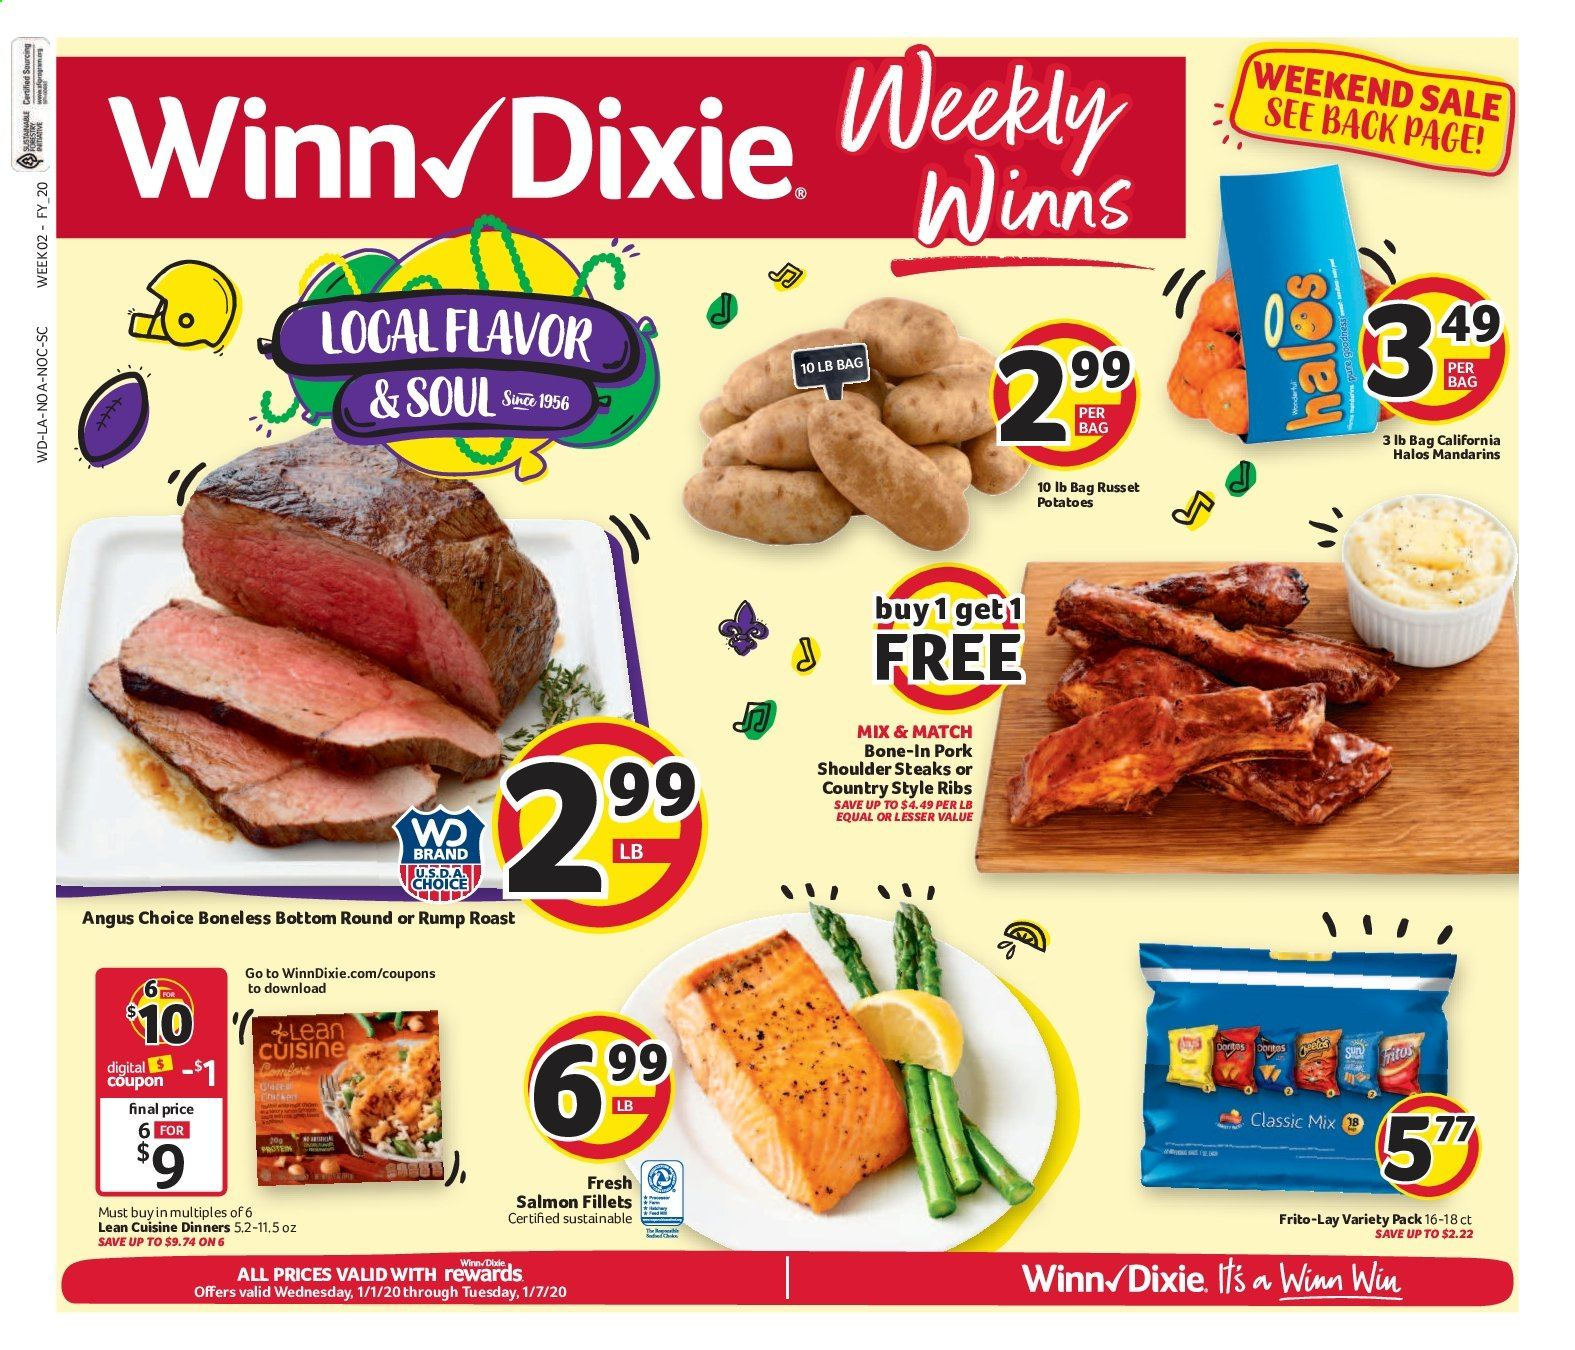 Winn Dixie Flyer - 01.01.2020 - 01.07.2020 - Sales products - russet potatoes, potatoes, pork meat, pork shoulder, salmon, ribs. Page 1.